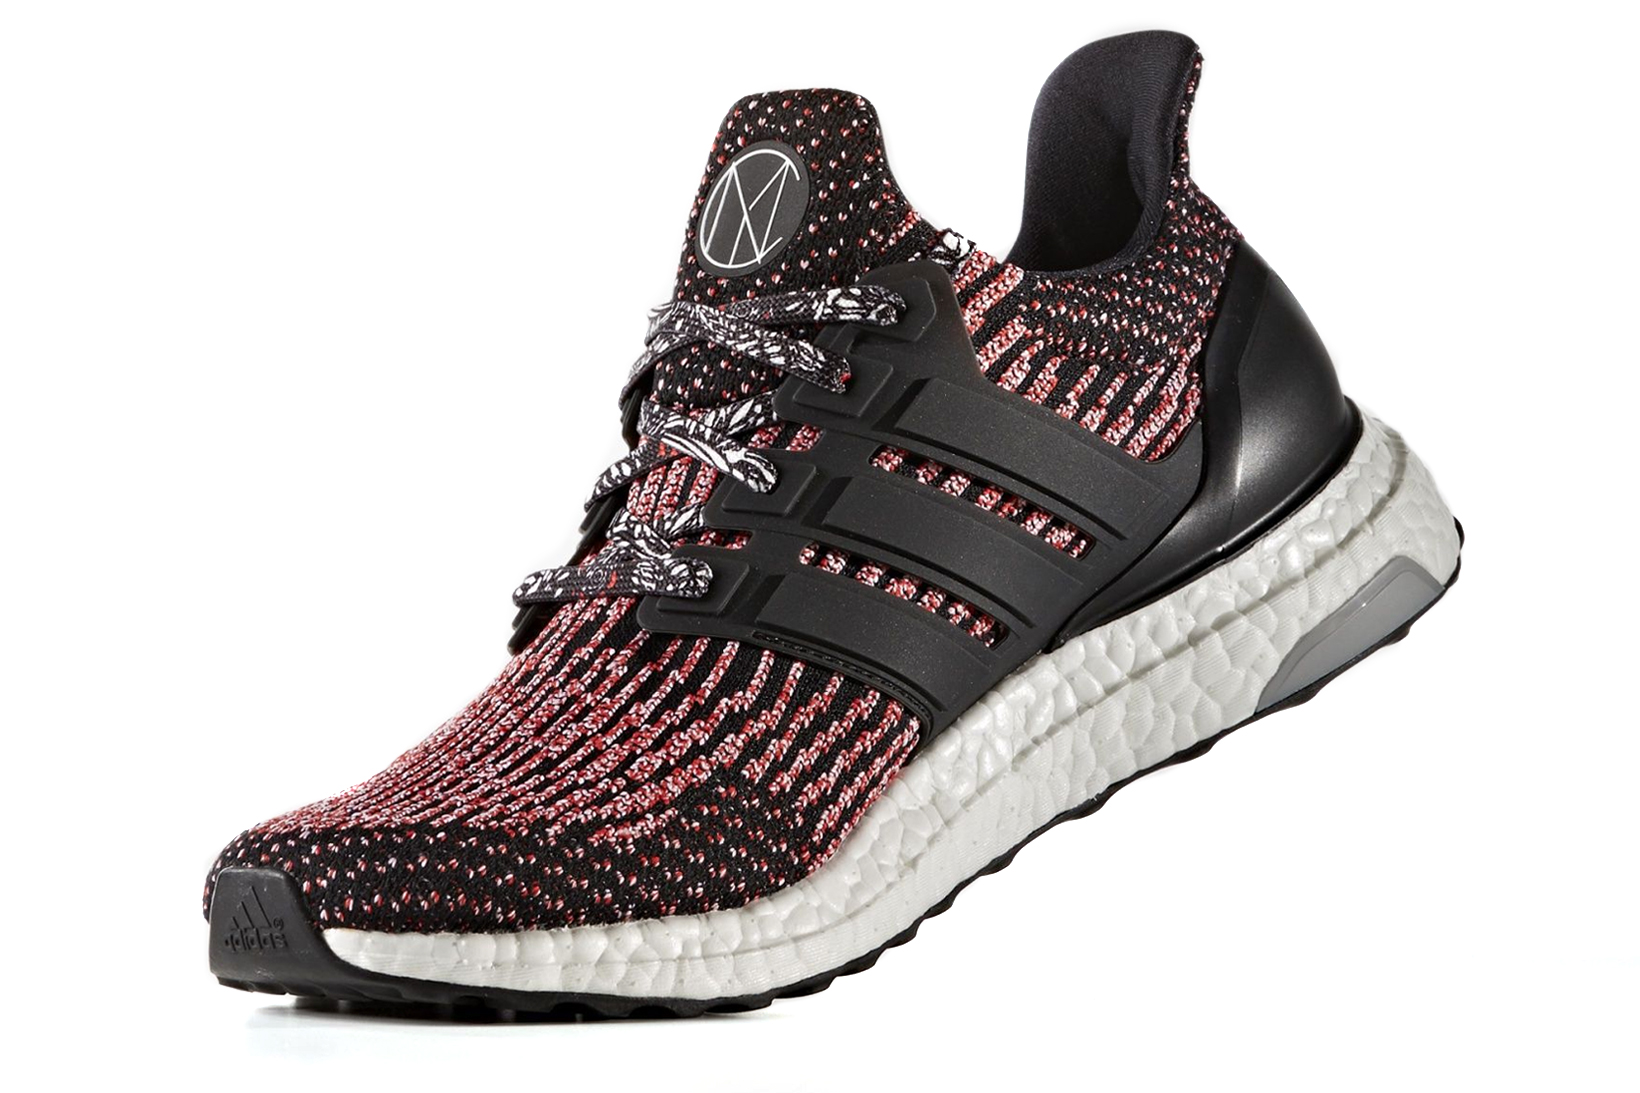 adidas UltraBOOST 3.0 Chinese New Year - 1833525